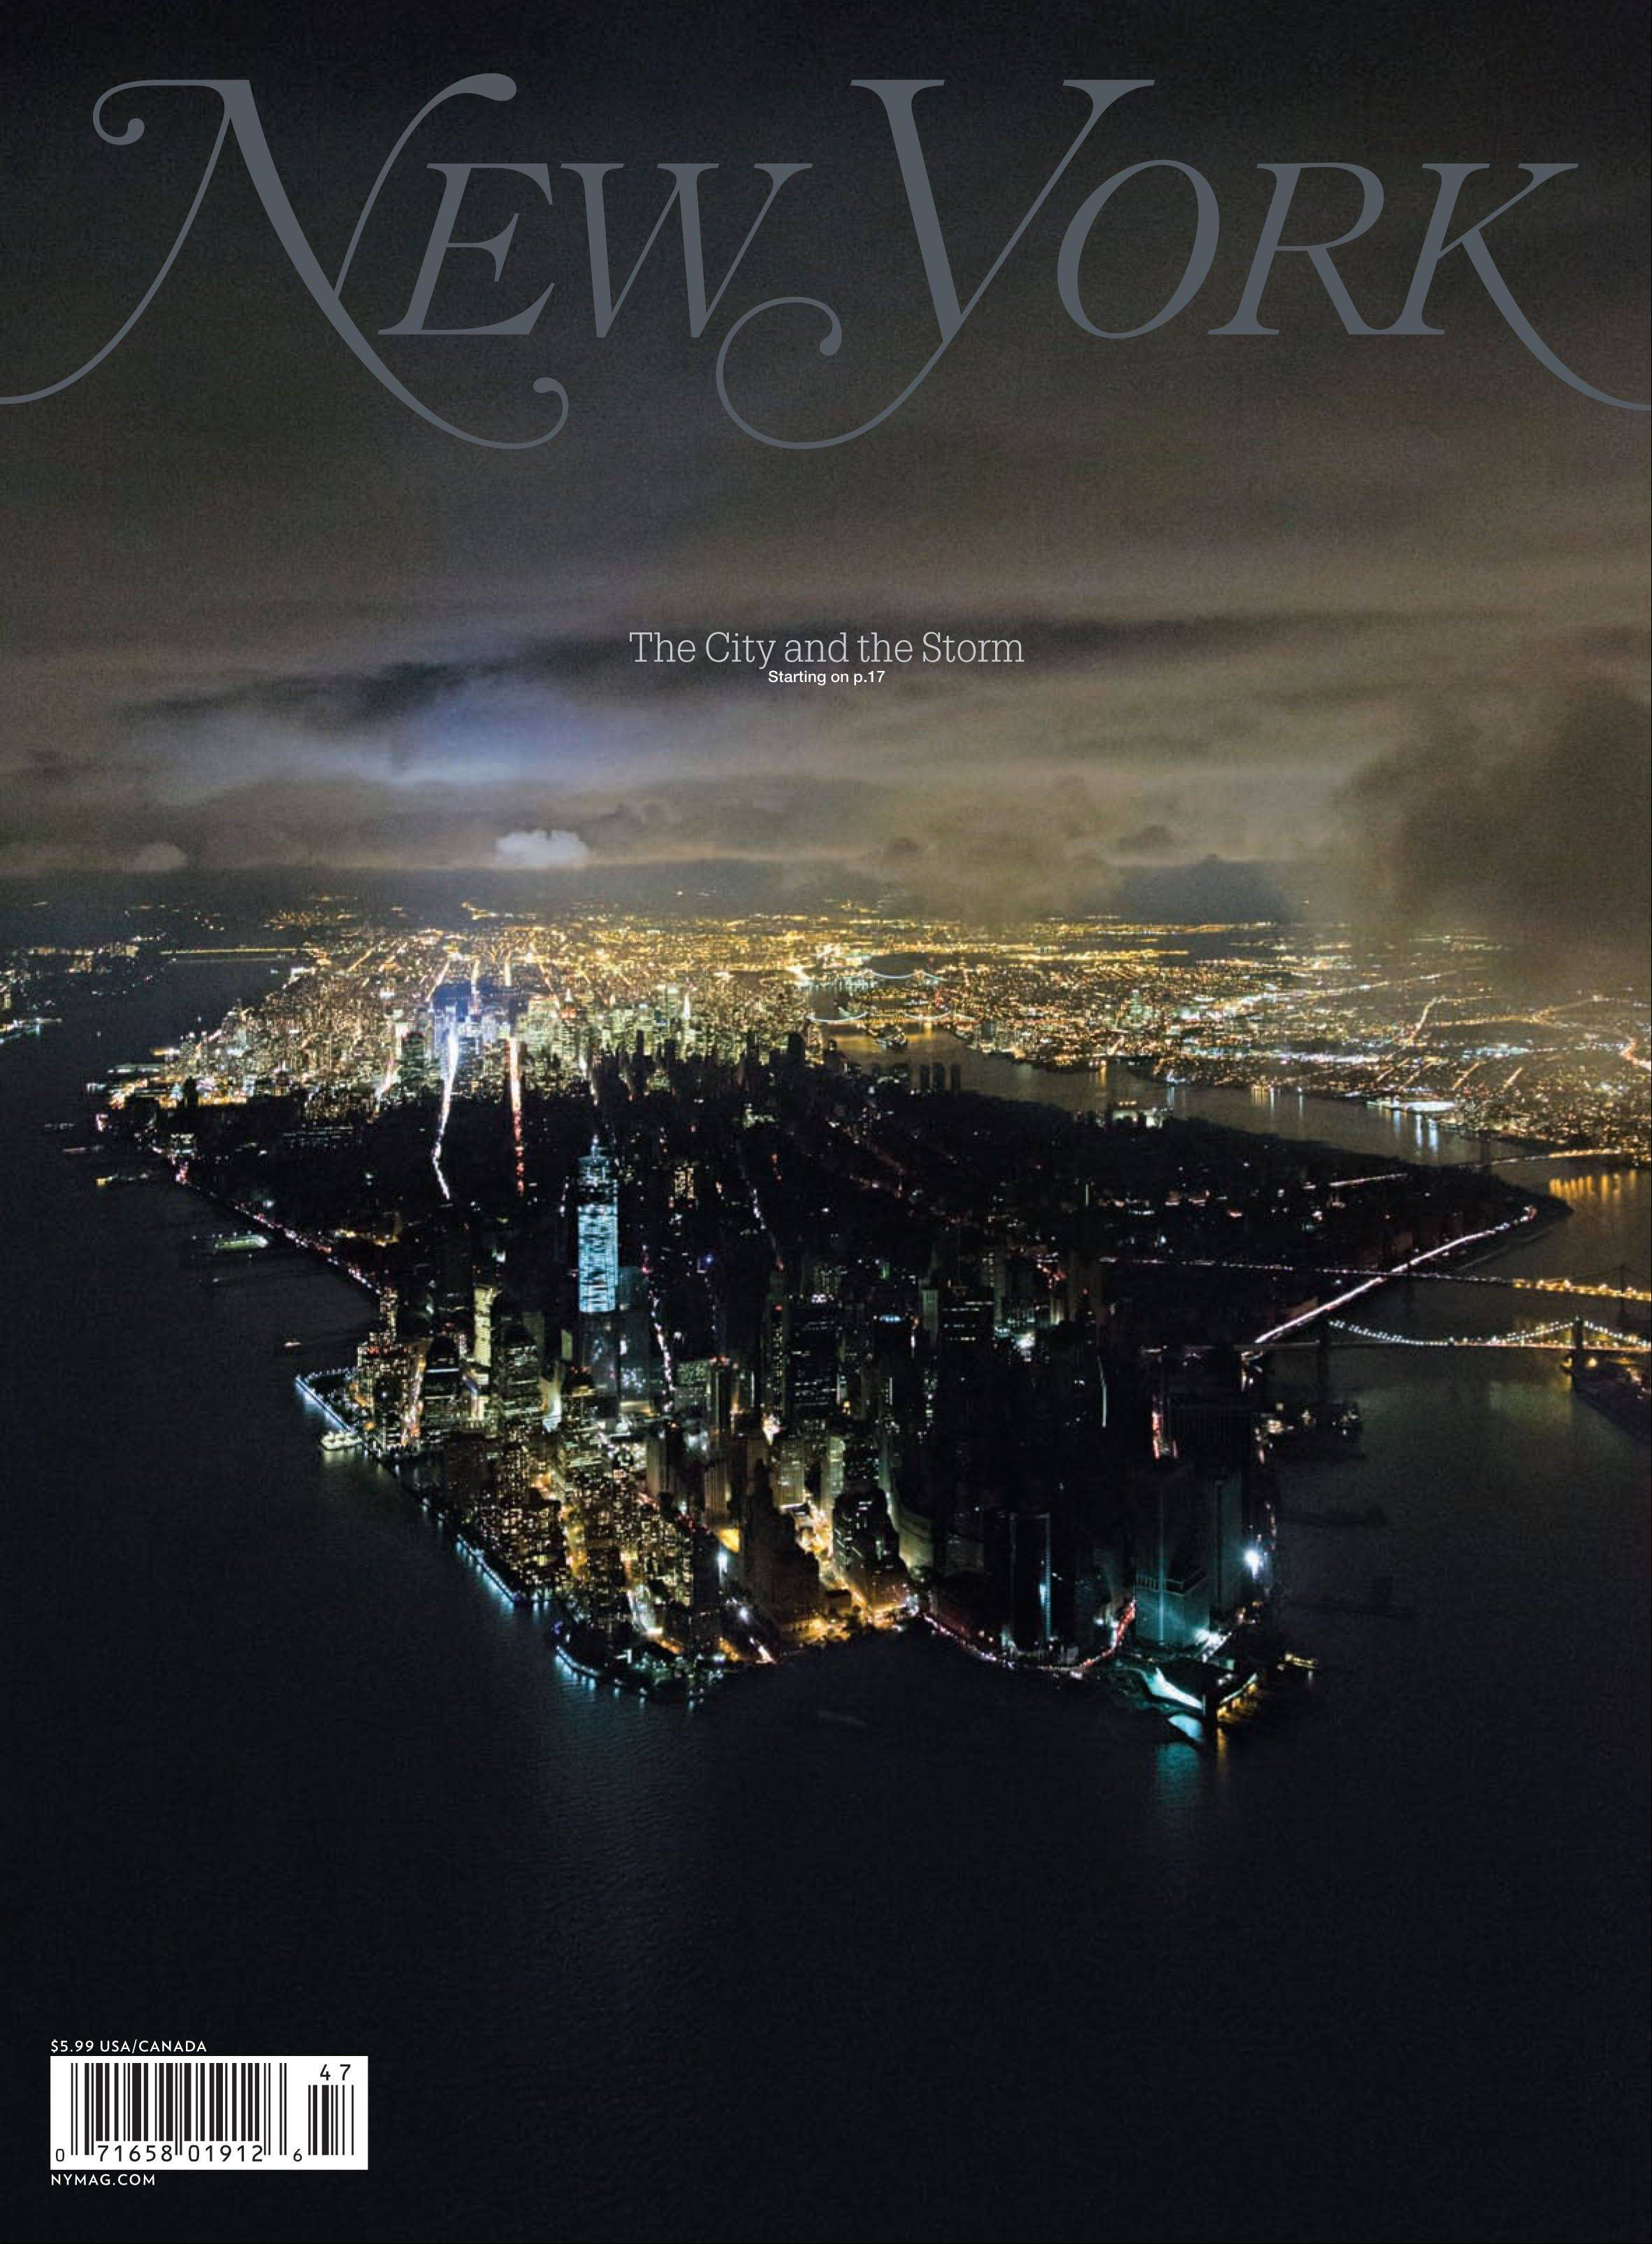 New York Magazine's cover features a photo taken by Iwan Baan on Wednesday, Oct. 31, showing New York City's Manhattan borough, half aglow and half in dark, after Superstorm Sandy slammed into the East Coast and morphed into a huge and problematic system, causing power outages for about 8.5 million.